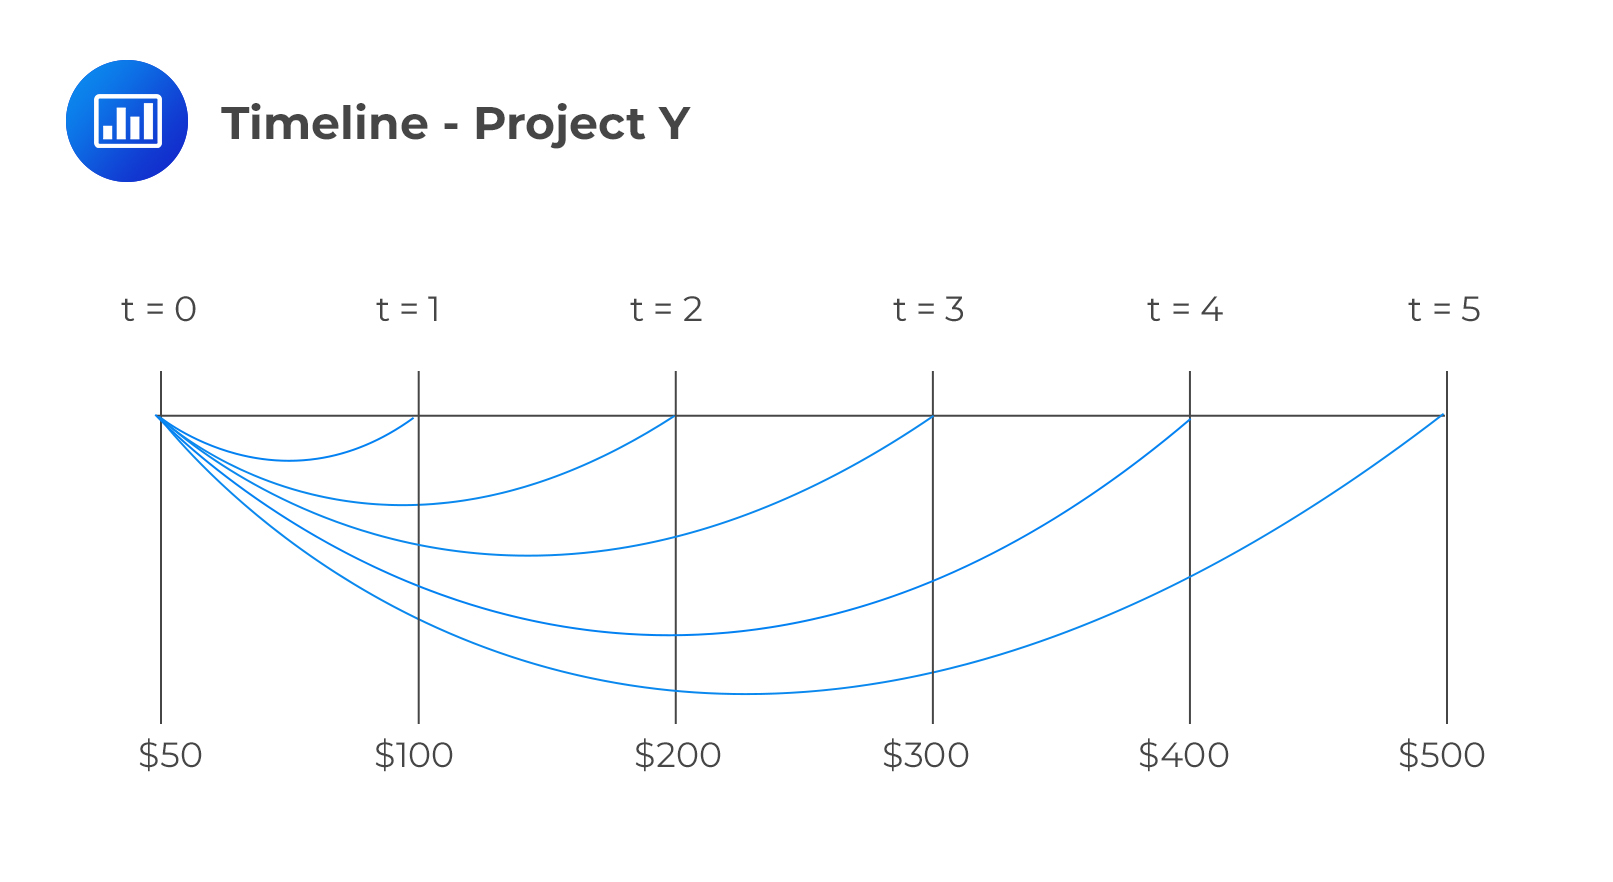 Timeline - Project Y